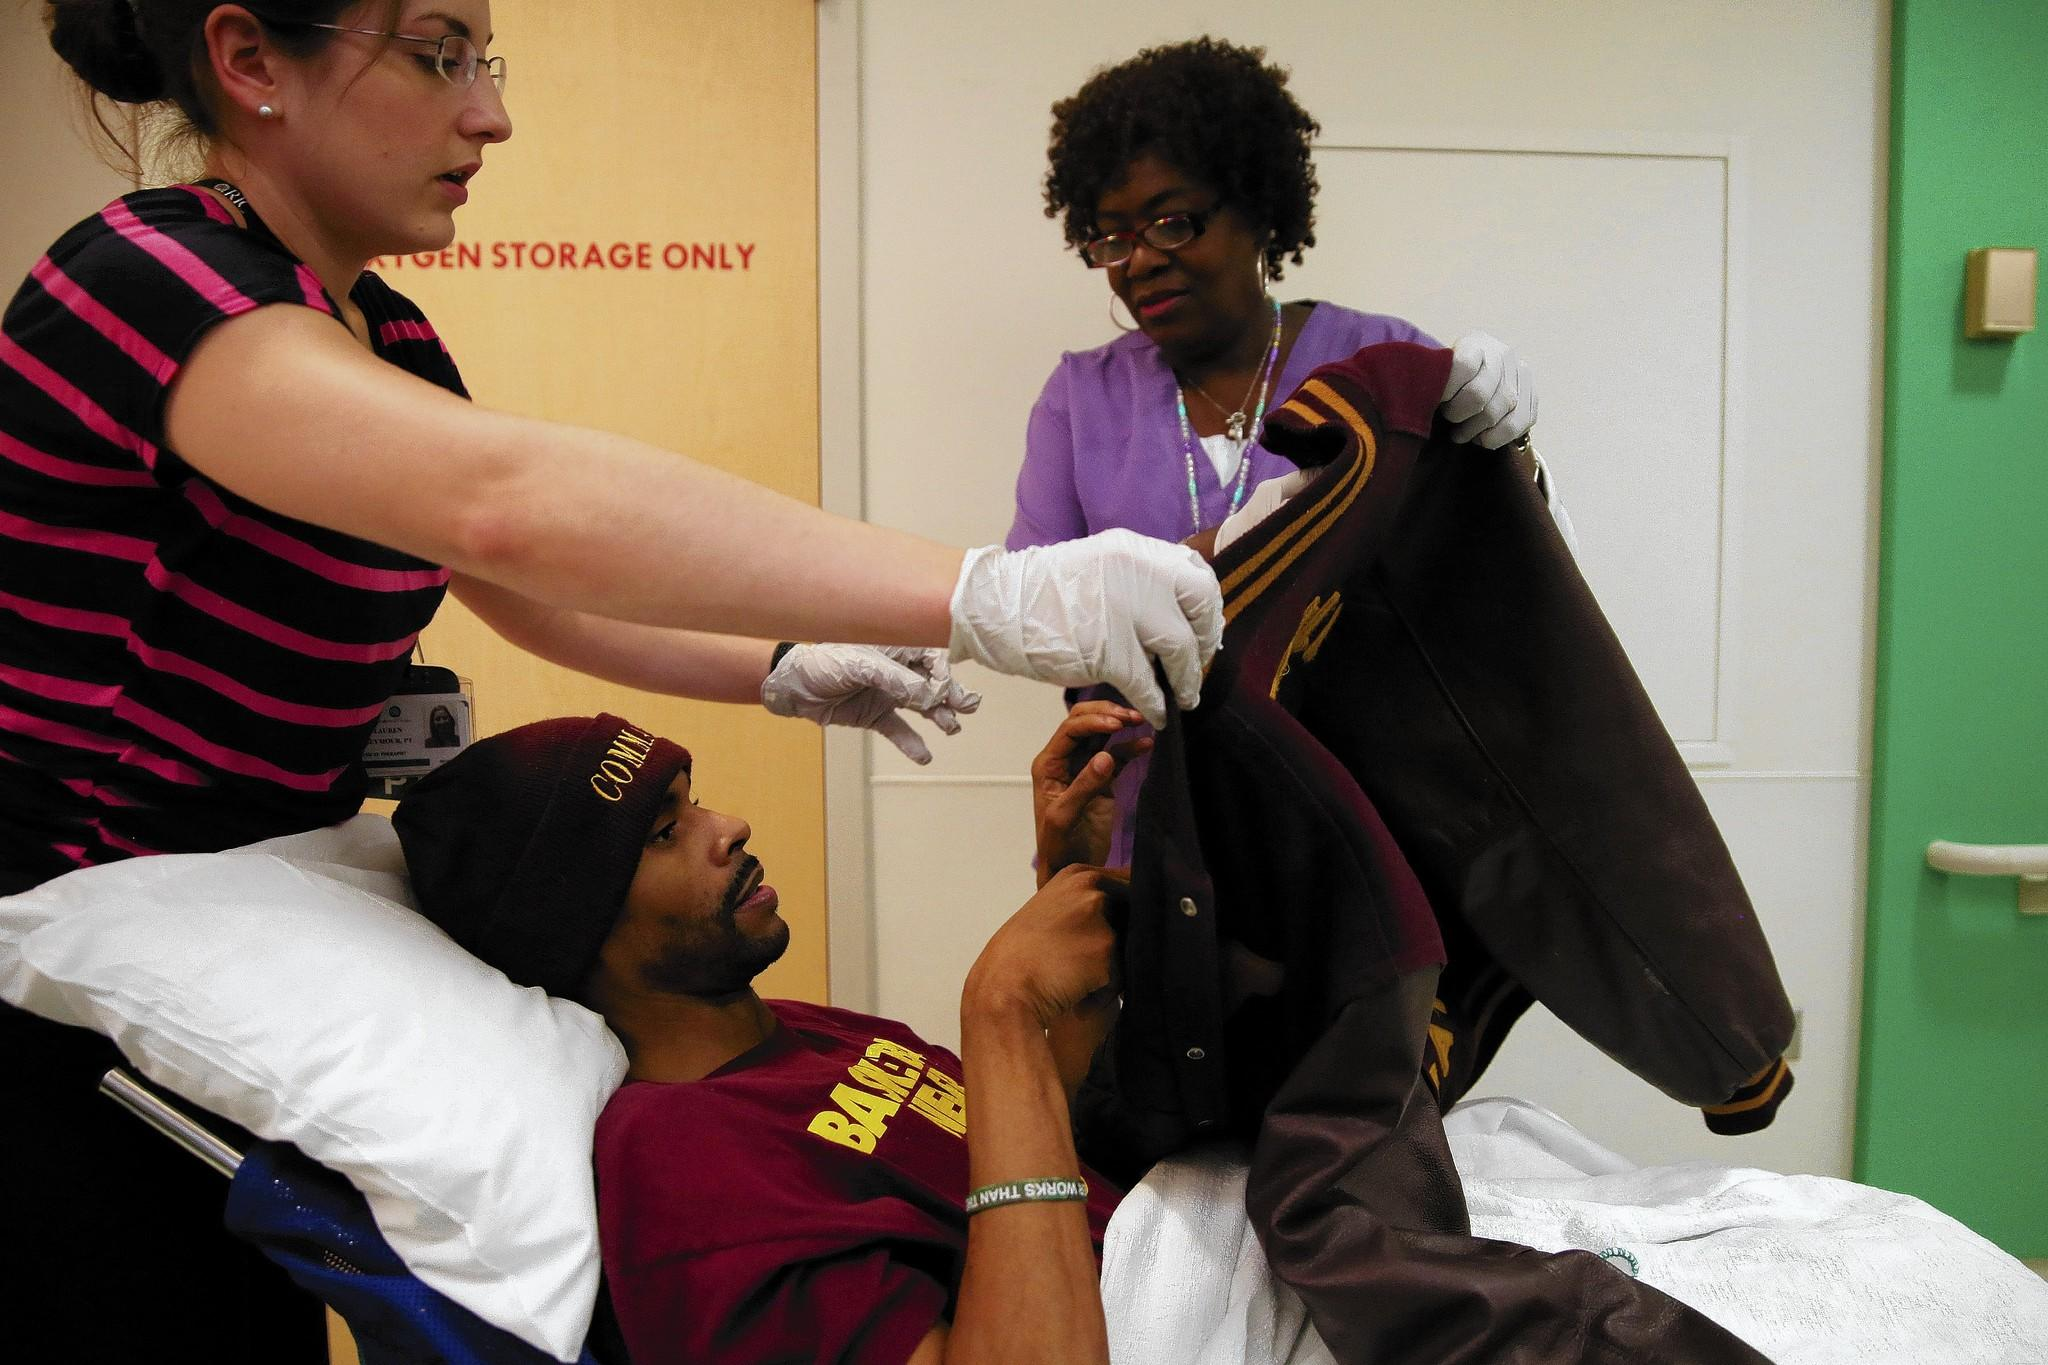 Shawn Harrington, who was shot in late January while driving his daughter to school in Chicago, is helped by physical therapist Lauren Seymour, left, and registered nurse Sharon Riggins before being taken for an MRI this month at the Rehabilitation Institute of Chicago.